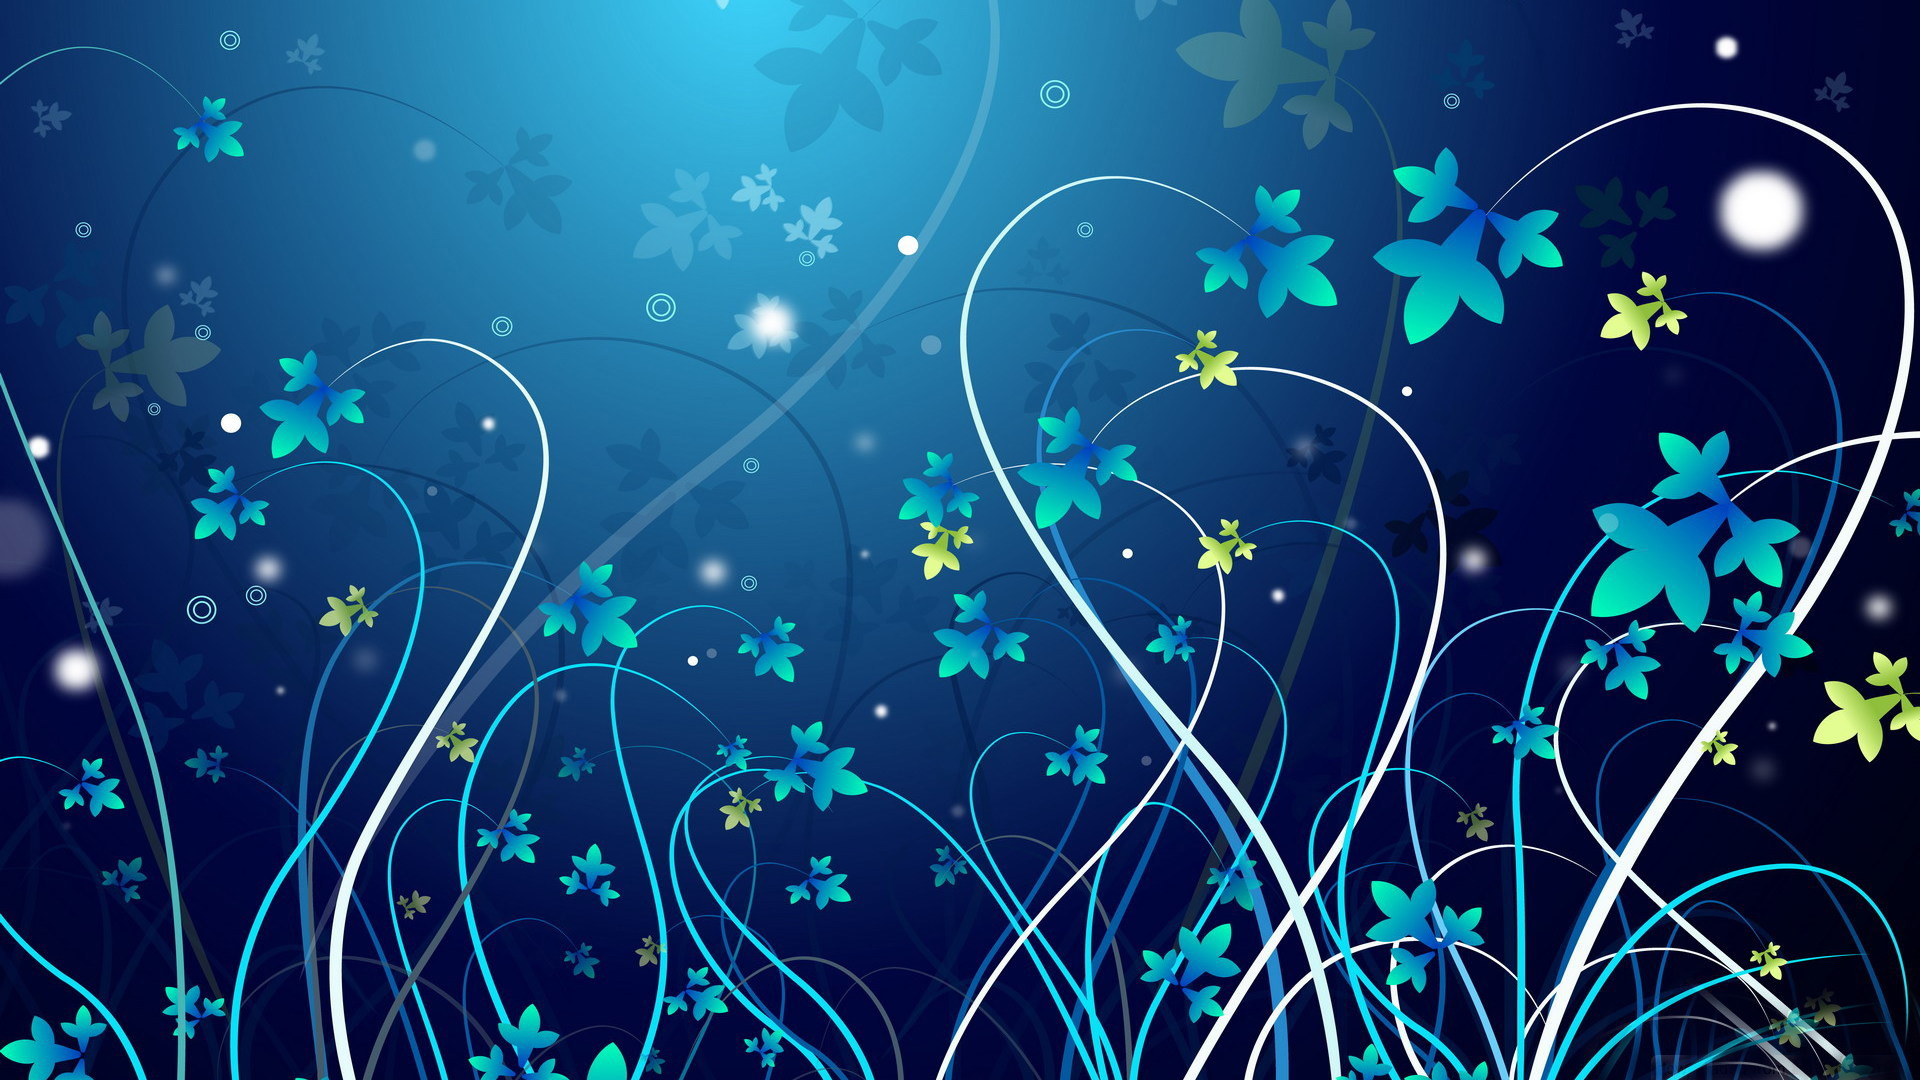 1920x1080 blue flowers background